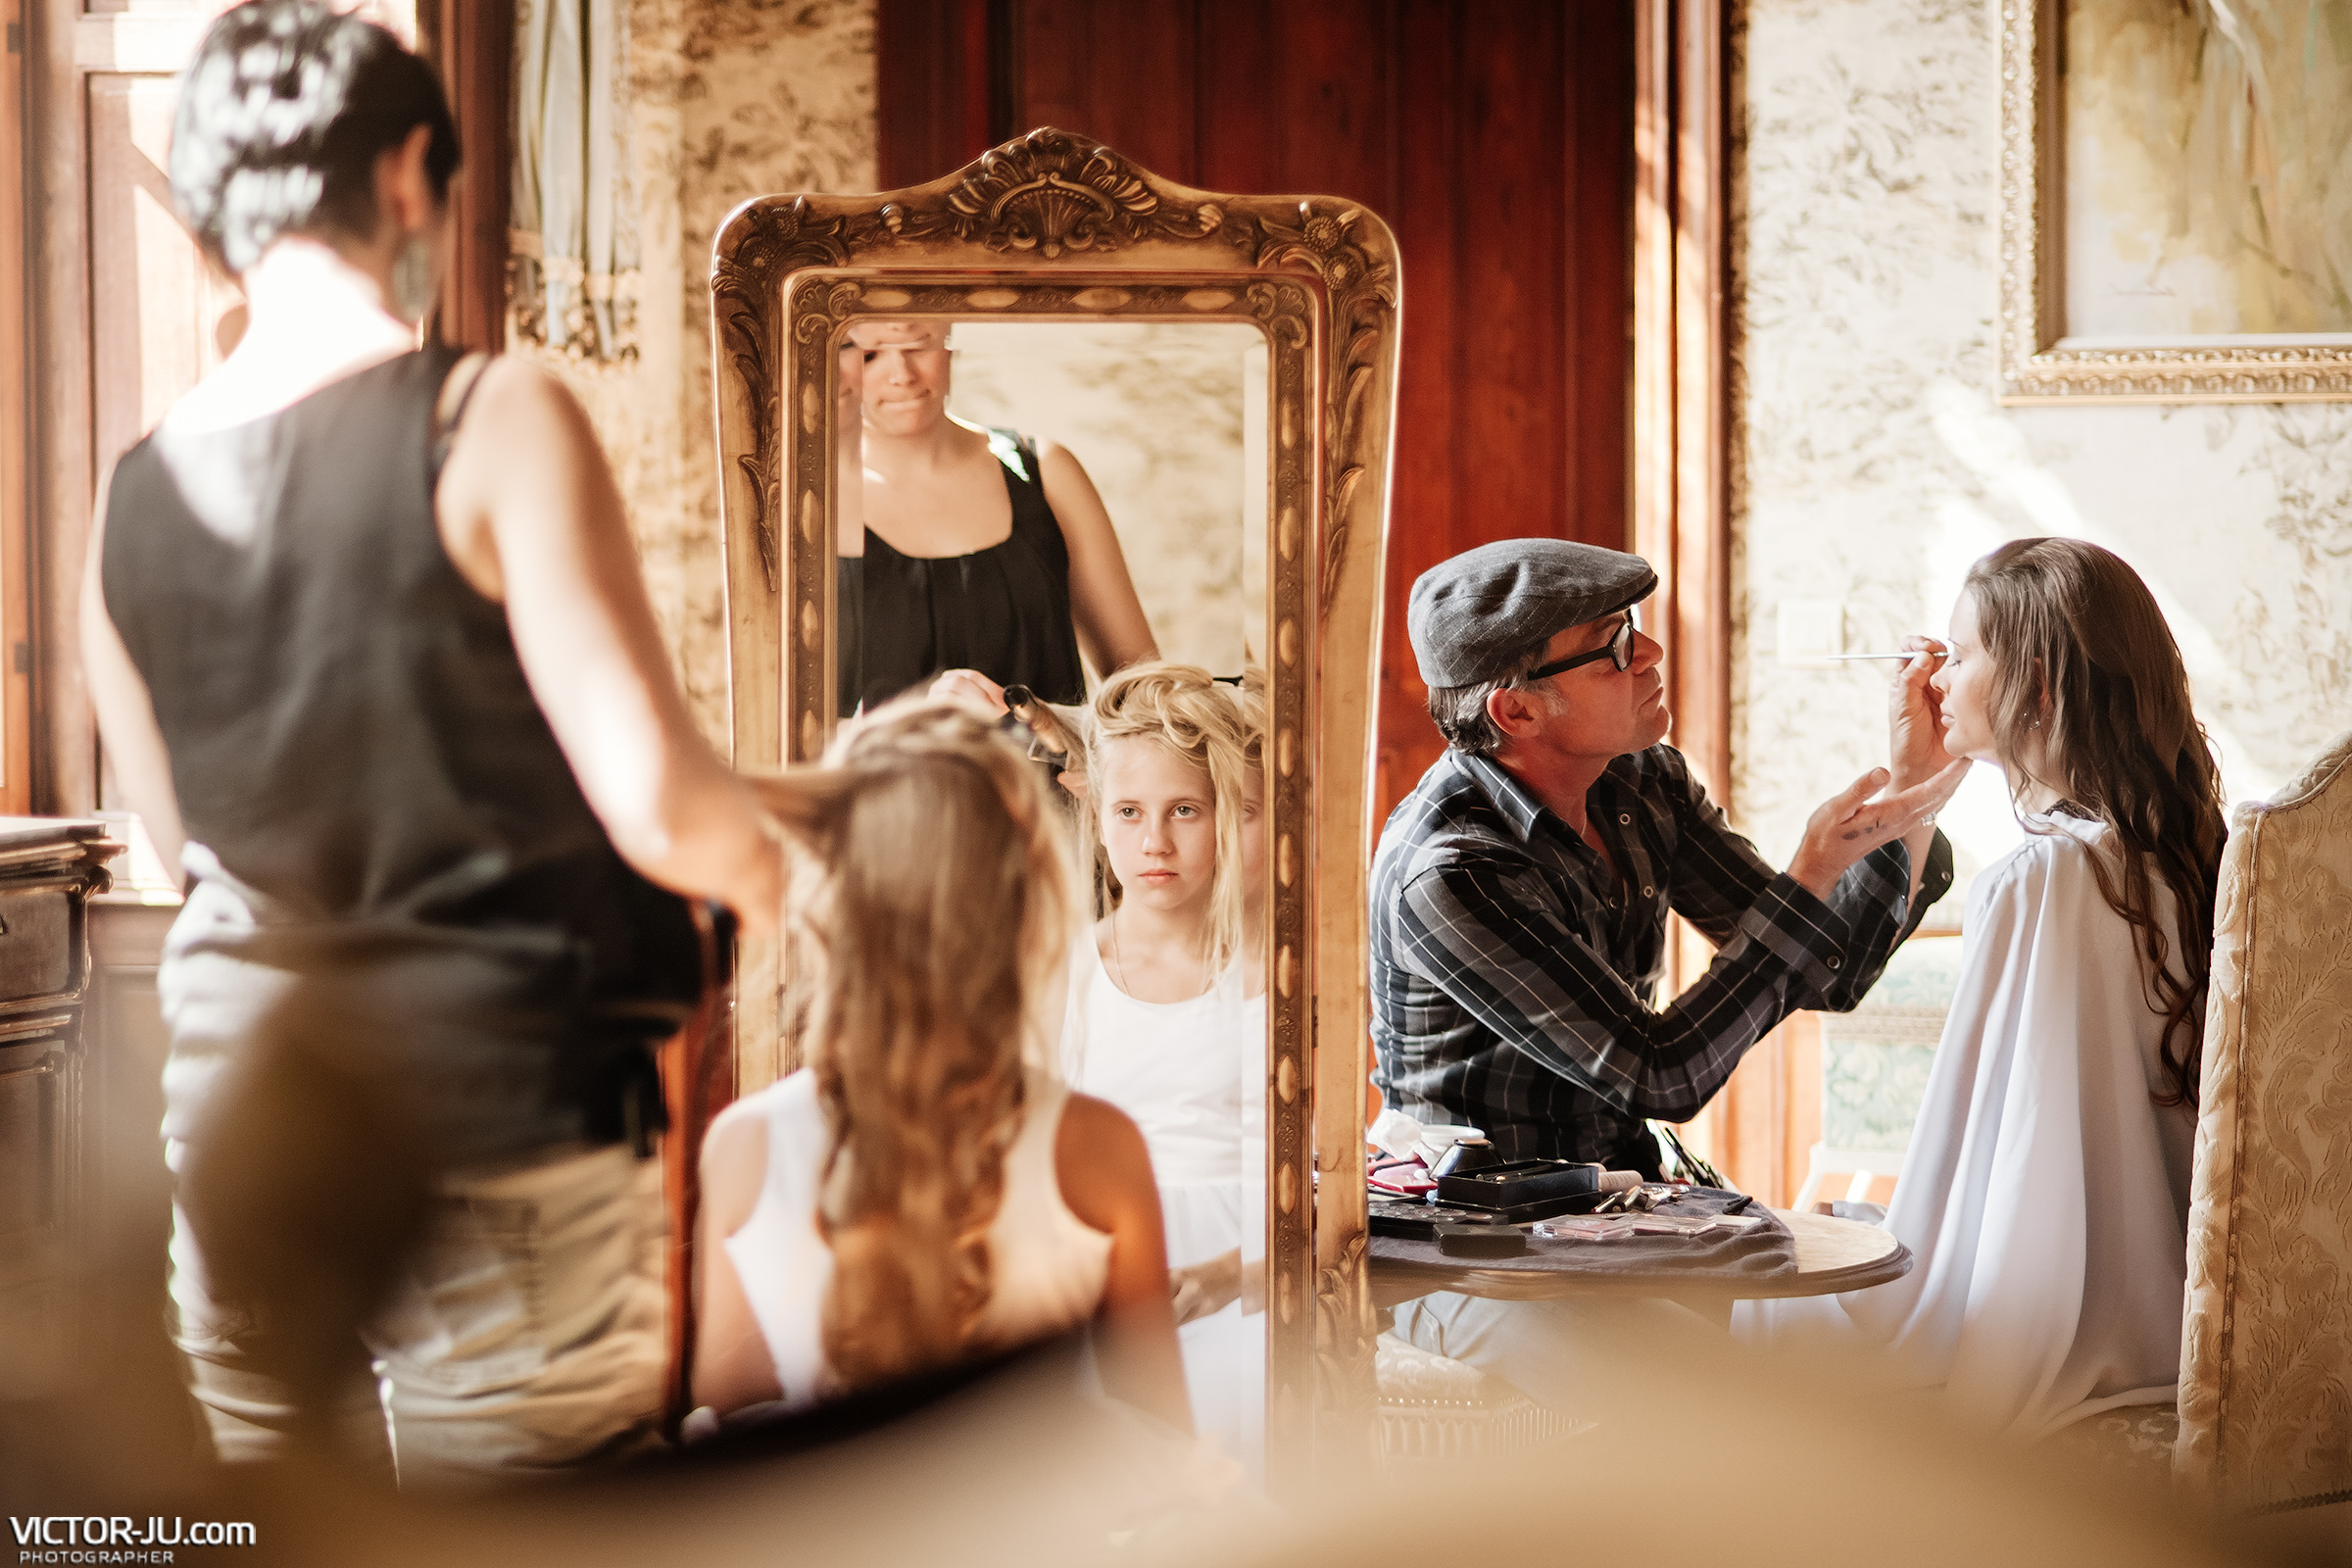 Make-up and bride hair style at a wedding in France